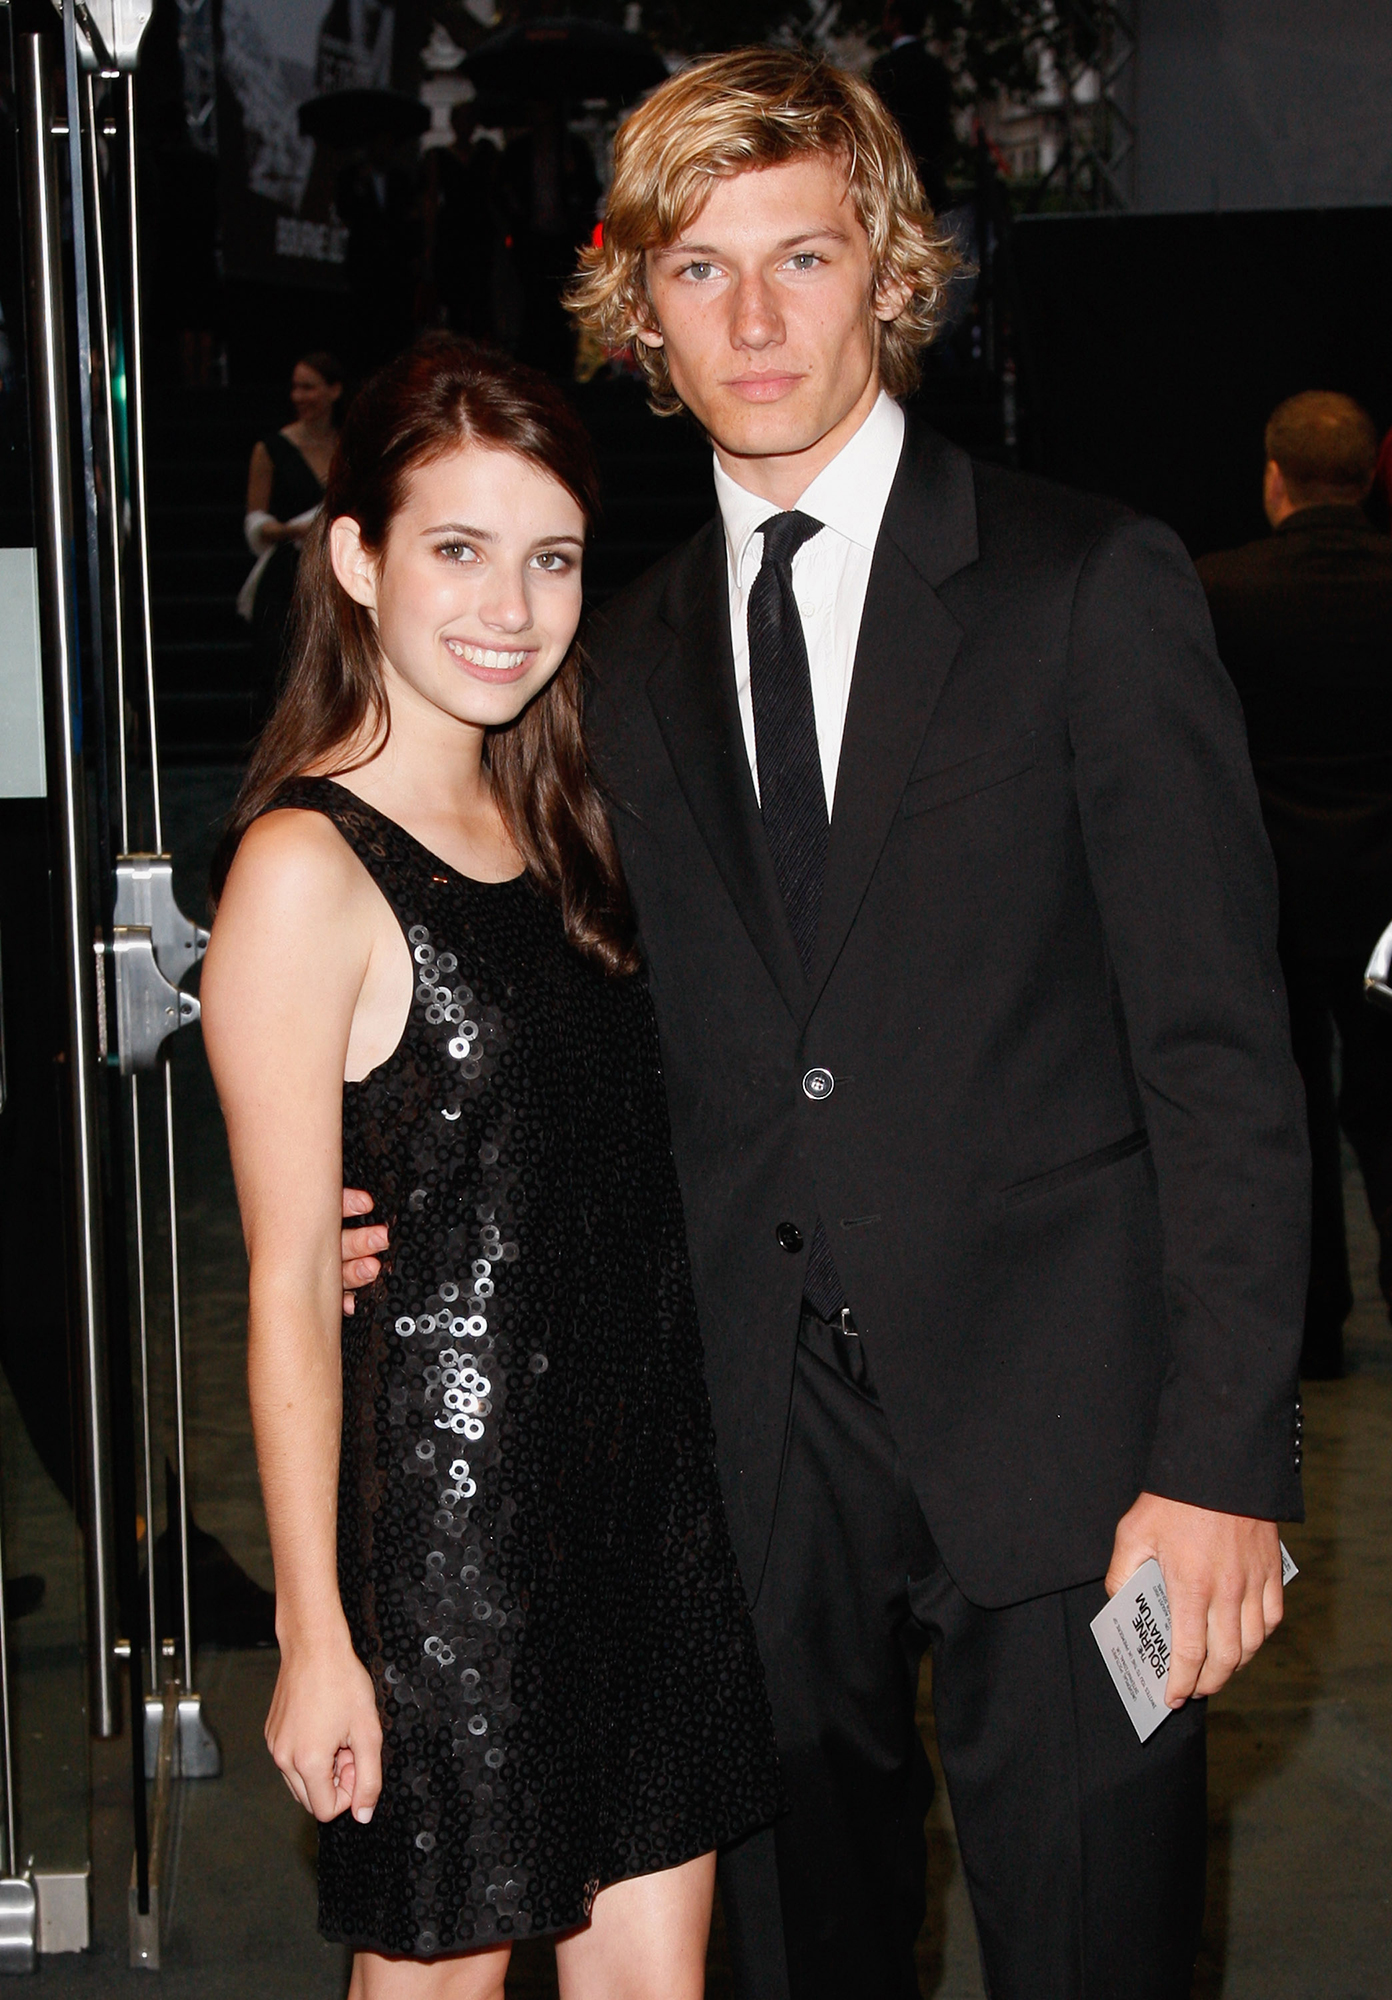 Emma Roberts' Dating History - Roberts' first high-profile romance was with Pettyfer, whom she met on the set of 2008's Wild Child. The duo dated for a year and the Beastly star even got the Nickelodeon alum's initials tattooed on his finger .